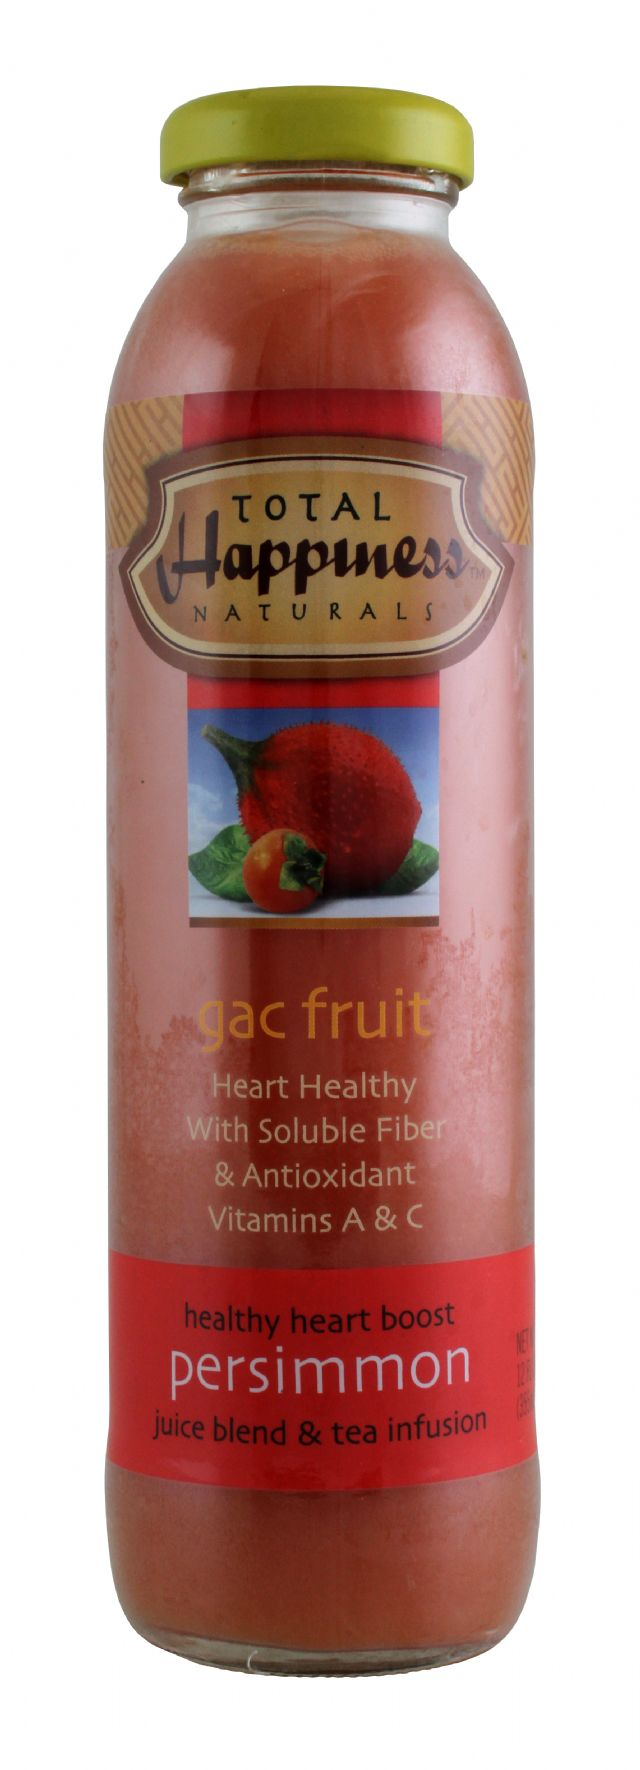 Total Happiness Naturals: TotalHappiness Persimmon Front